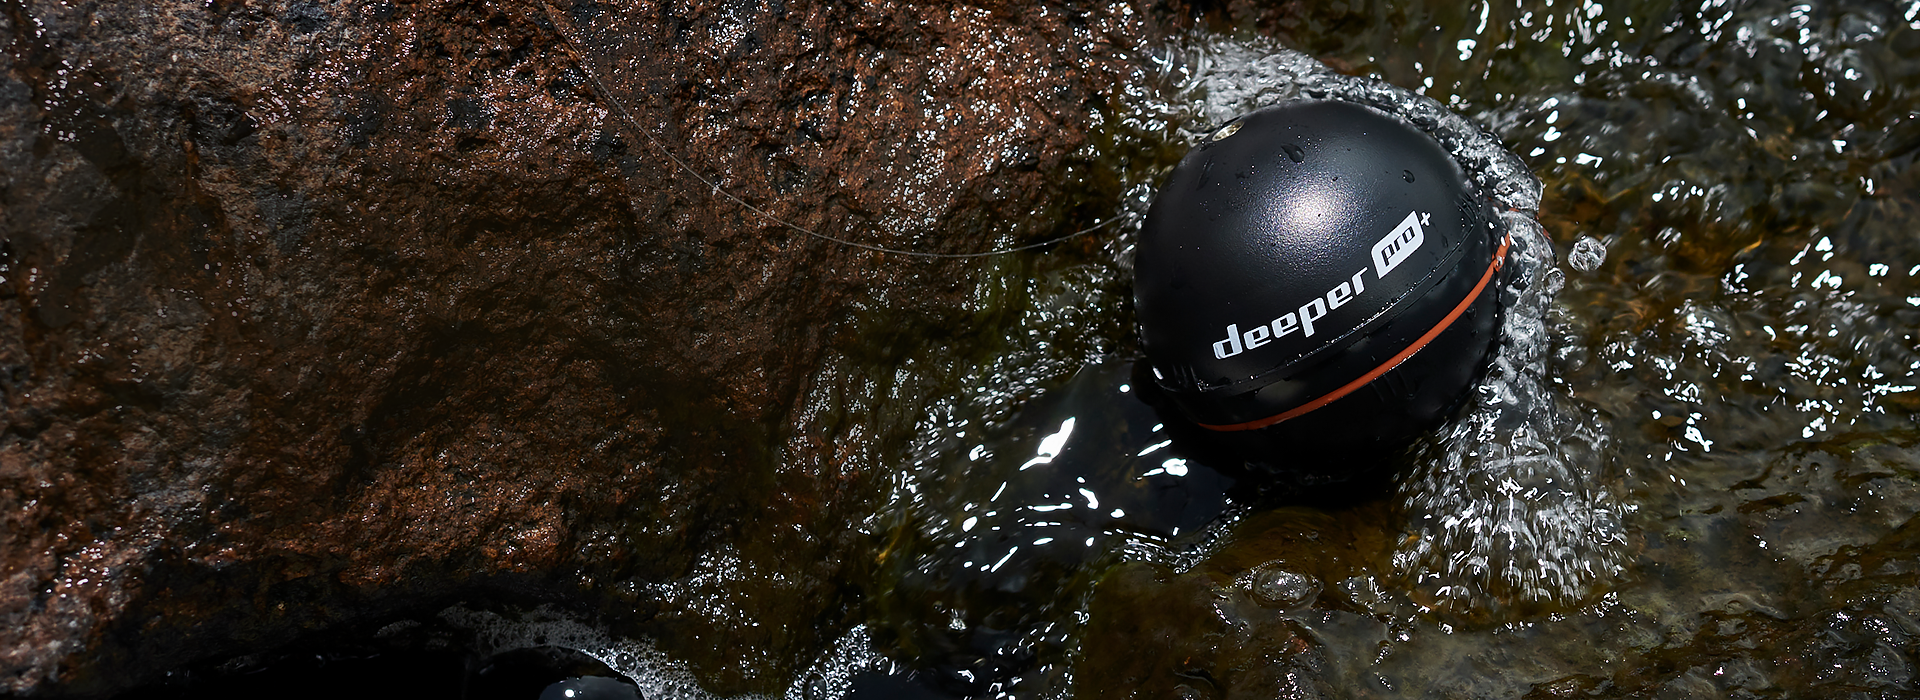 Be prepared for the next fishing wave!Get yourself Deeper sonar from £174.99